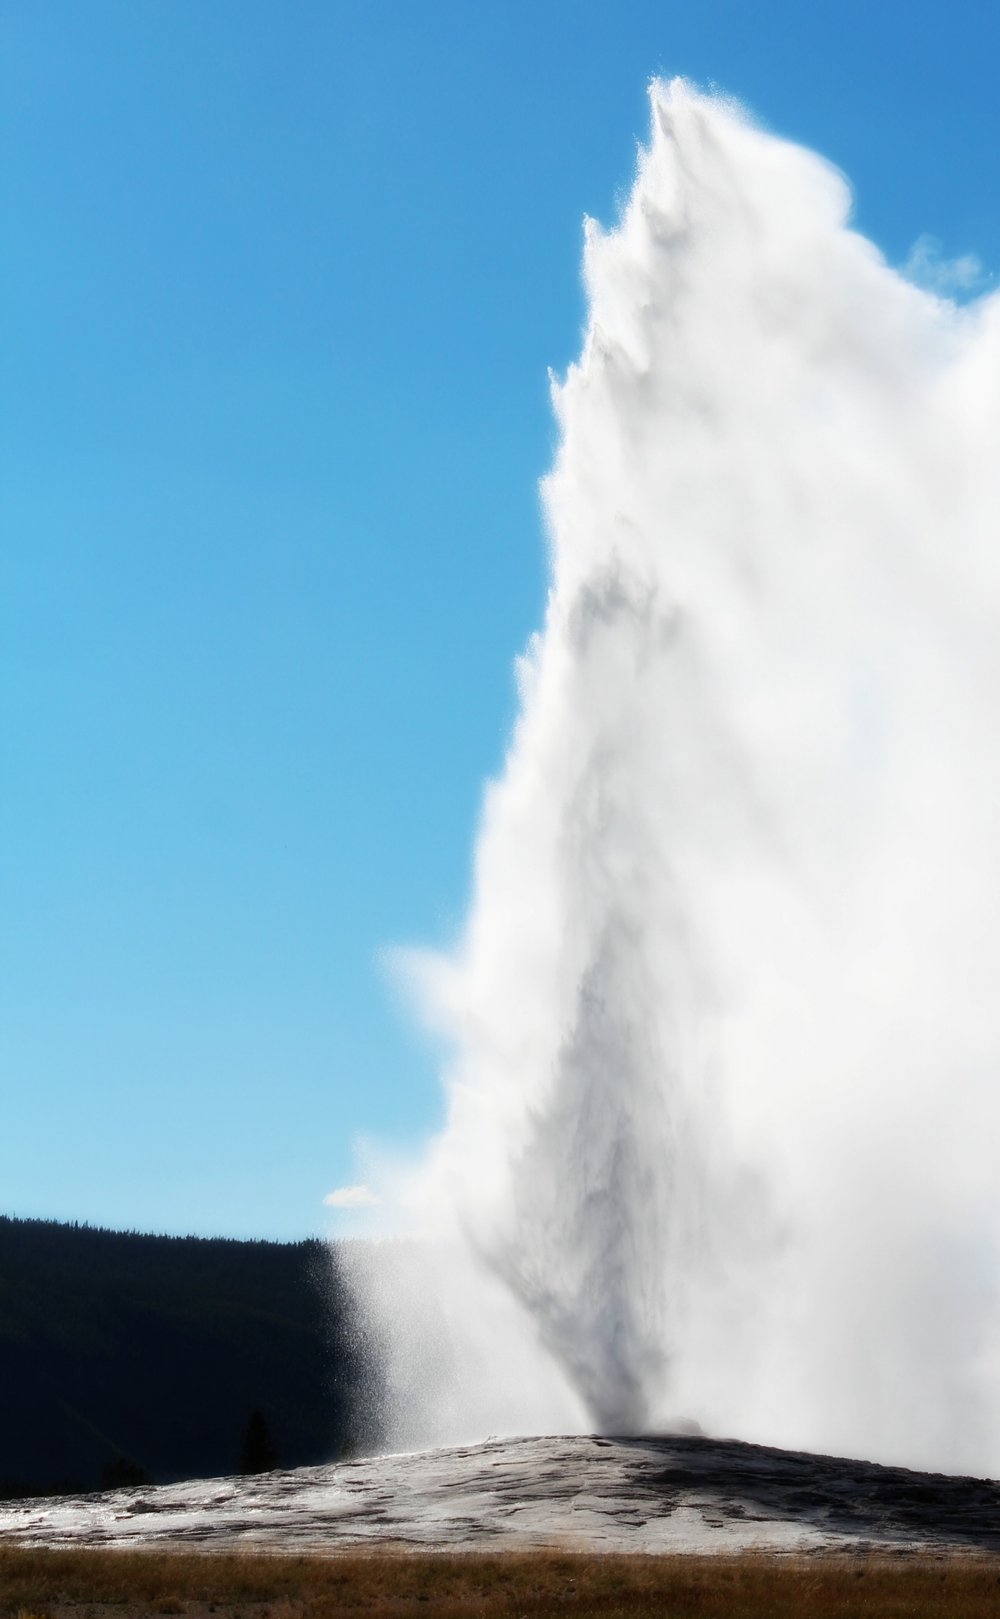 From Old Faithful to Hayden Valley and all of the wildlife, geysers, hot springs, mud pots, hiking trails and swimming holes in between, Yellowstone makes for one rad family vacation.